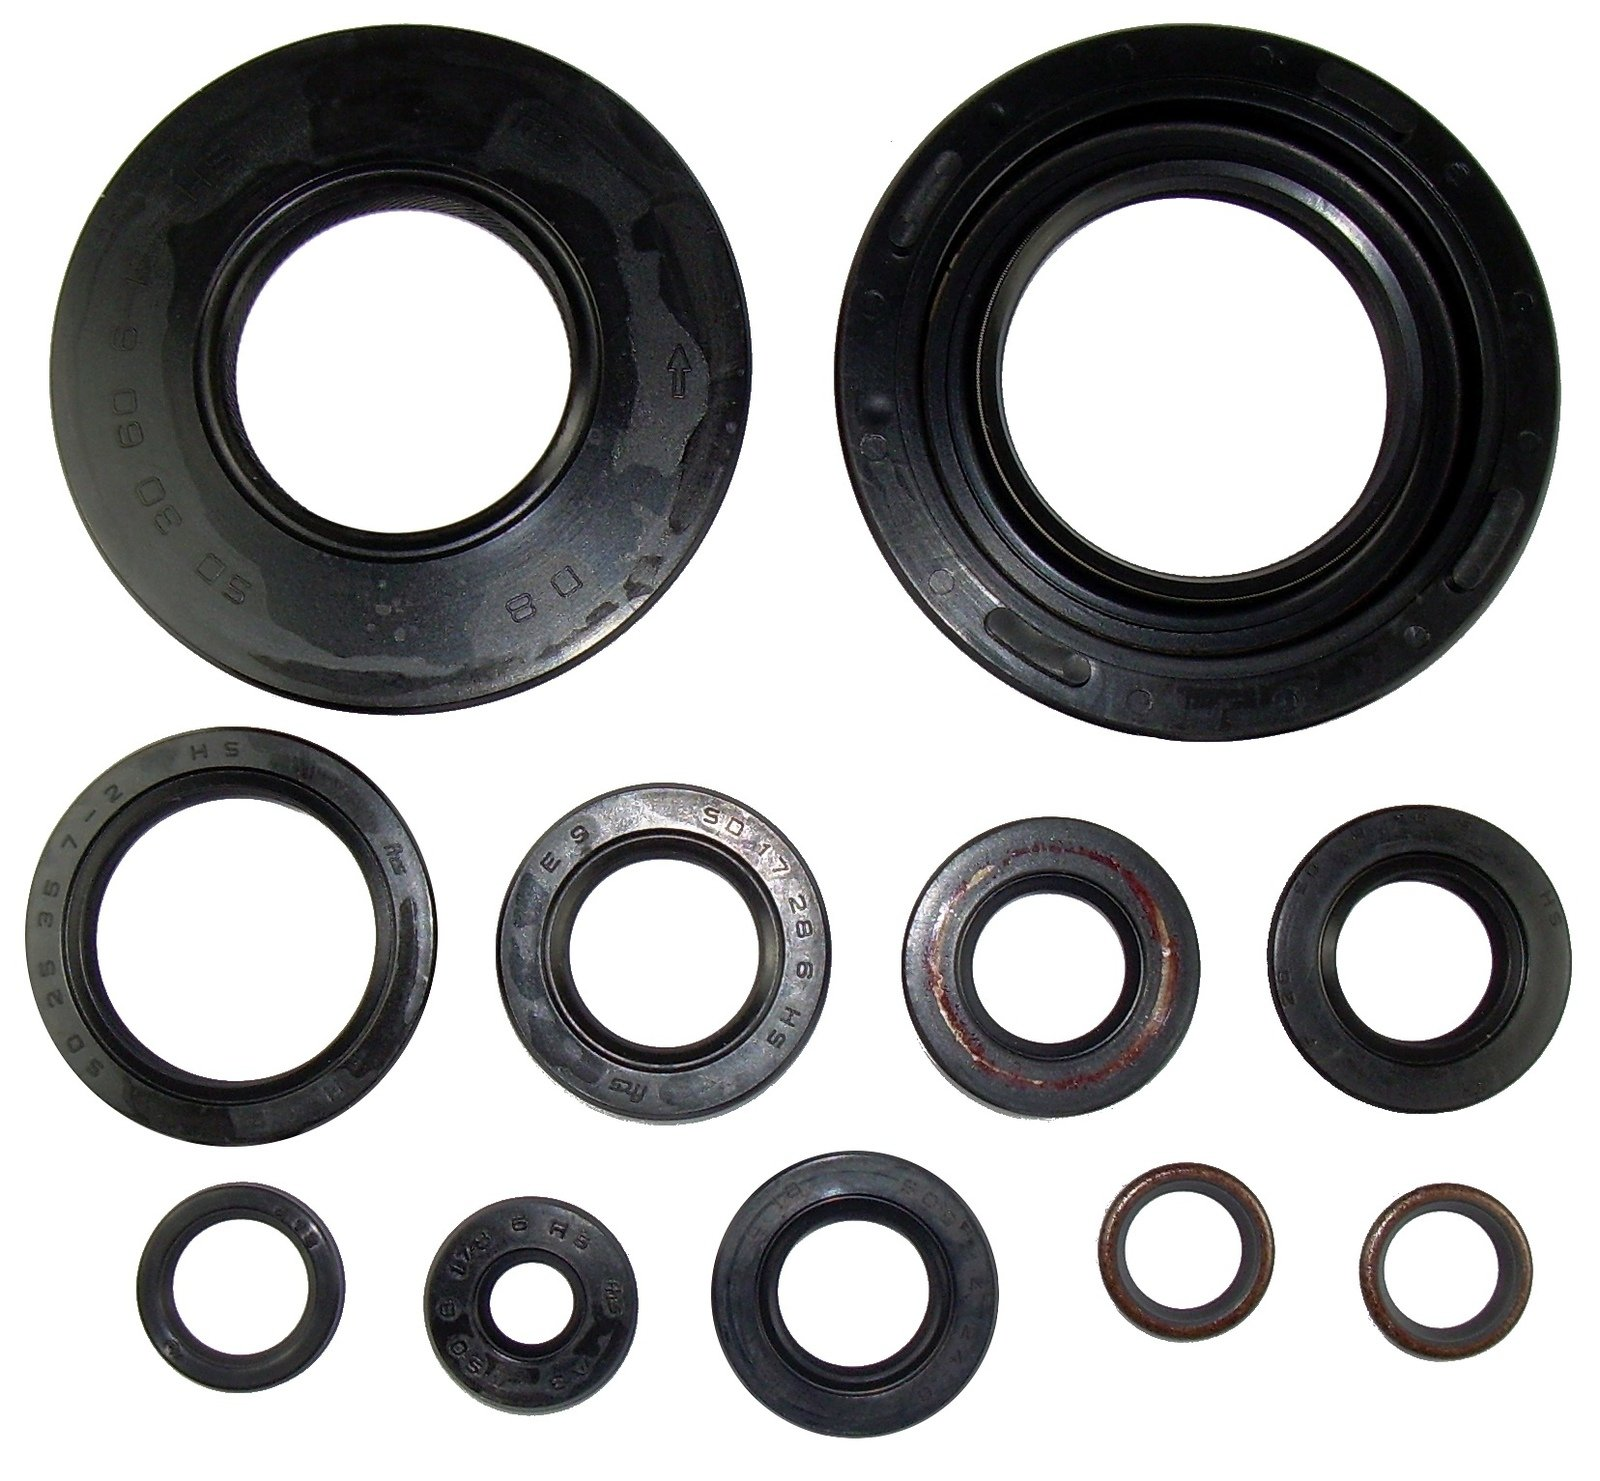 hight resolution of yamaha tt500 xt500 engine shaft seals kit incl seal for governor 11pcs 90023